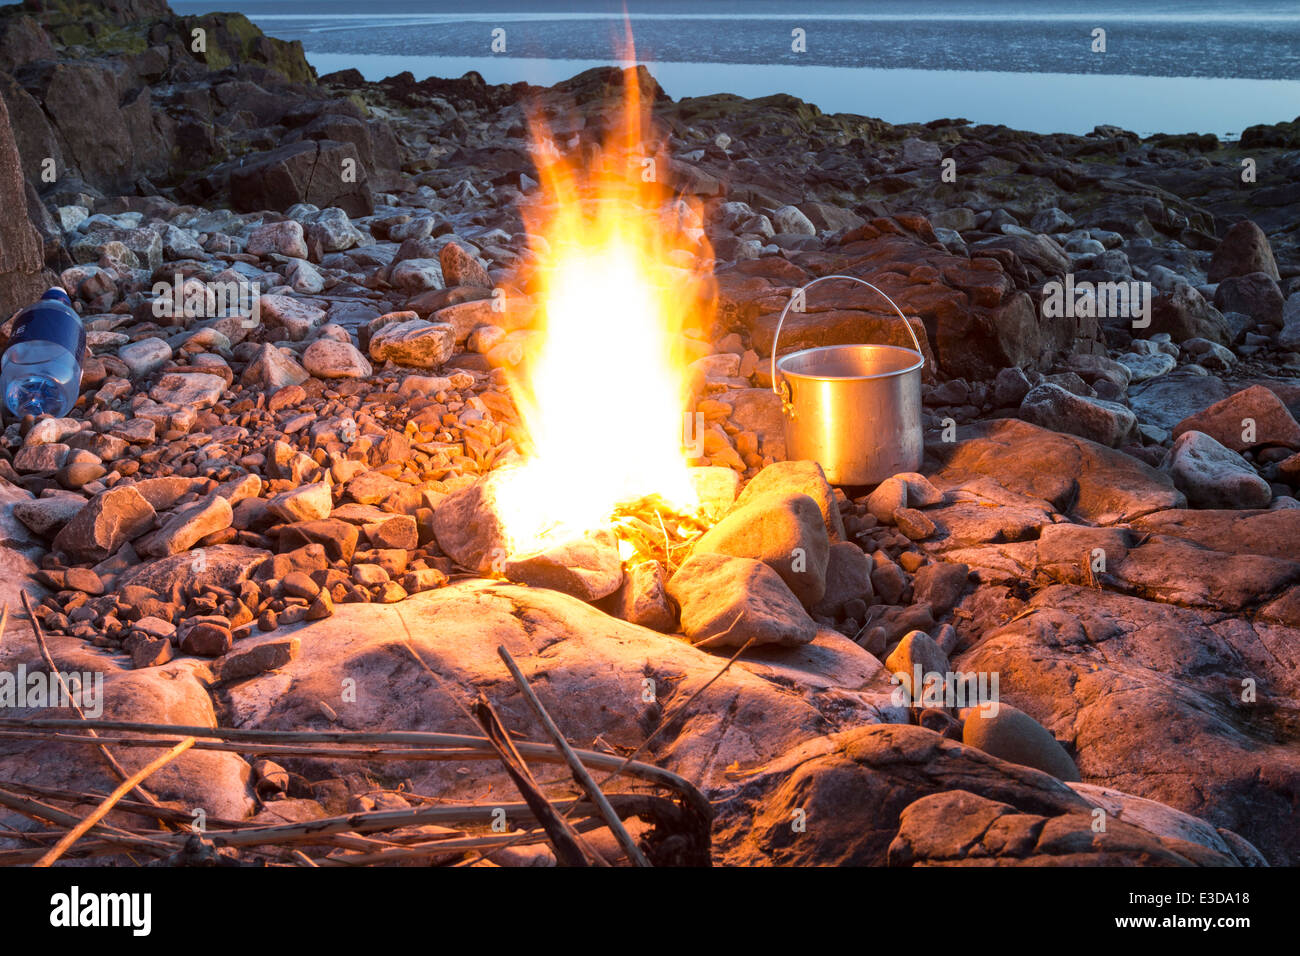 Camp Fire with Cooking Pot on a Rocky Beach at Dusk England UK - Stock Image